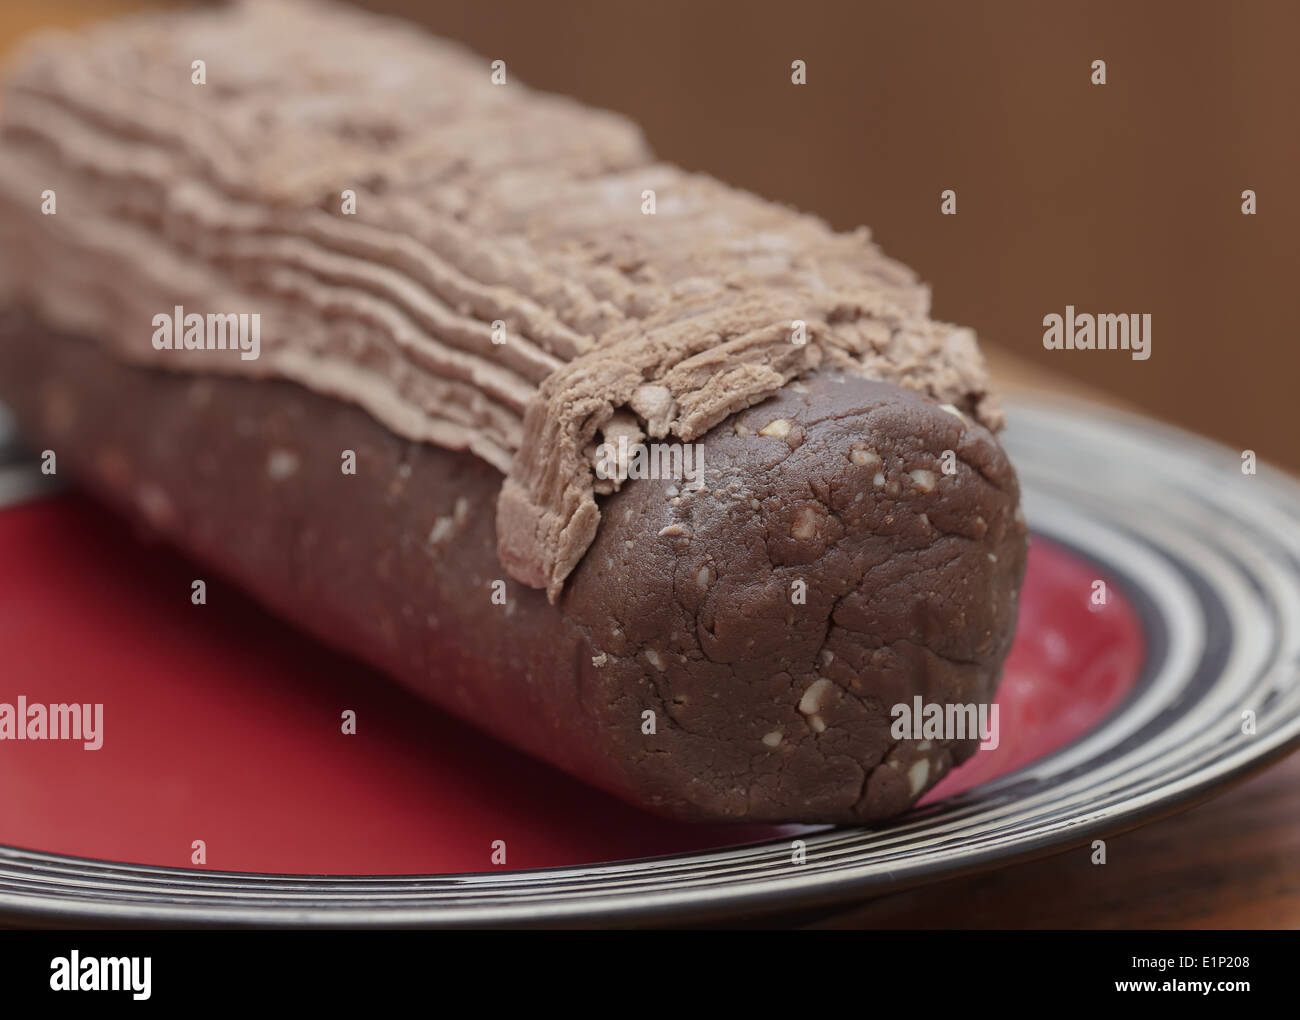 Chocolate dessert log ready-to-eat on red plate - Stock Image